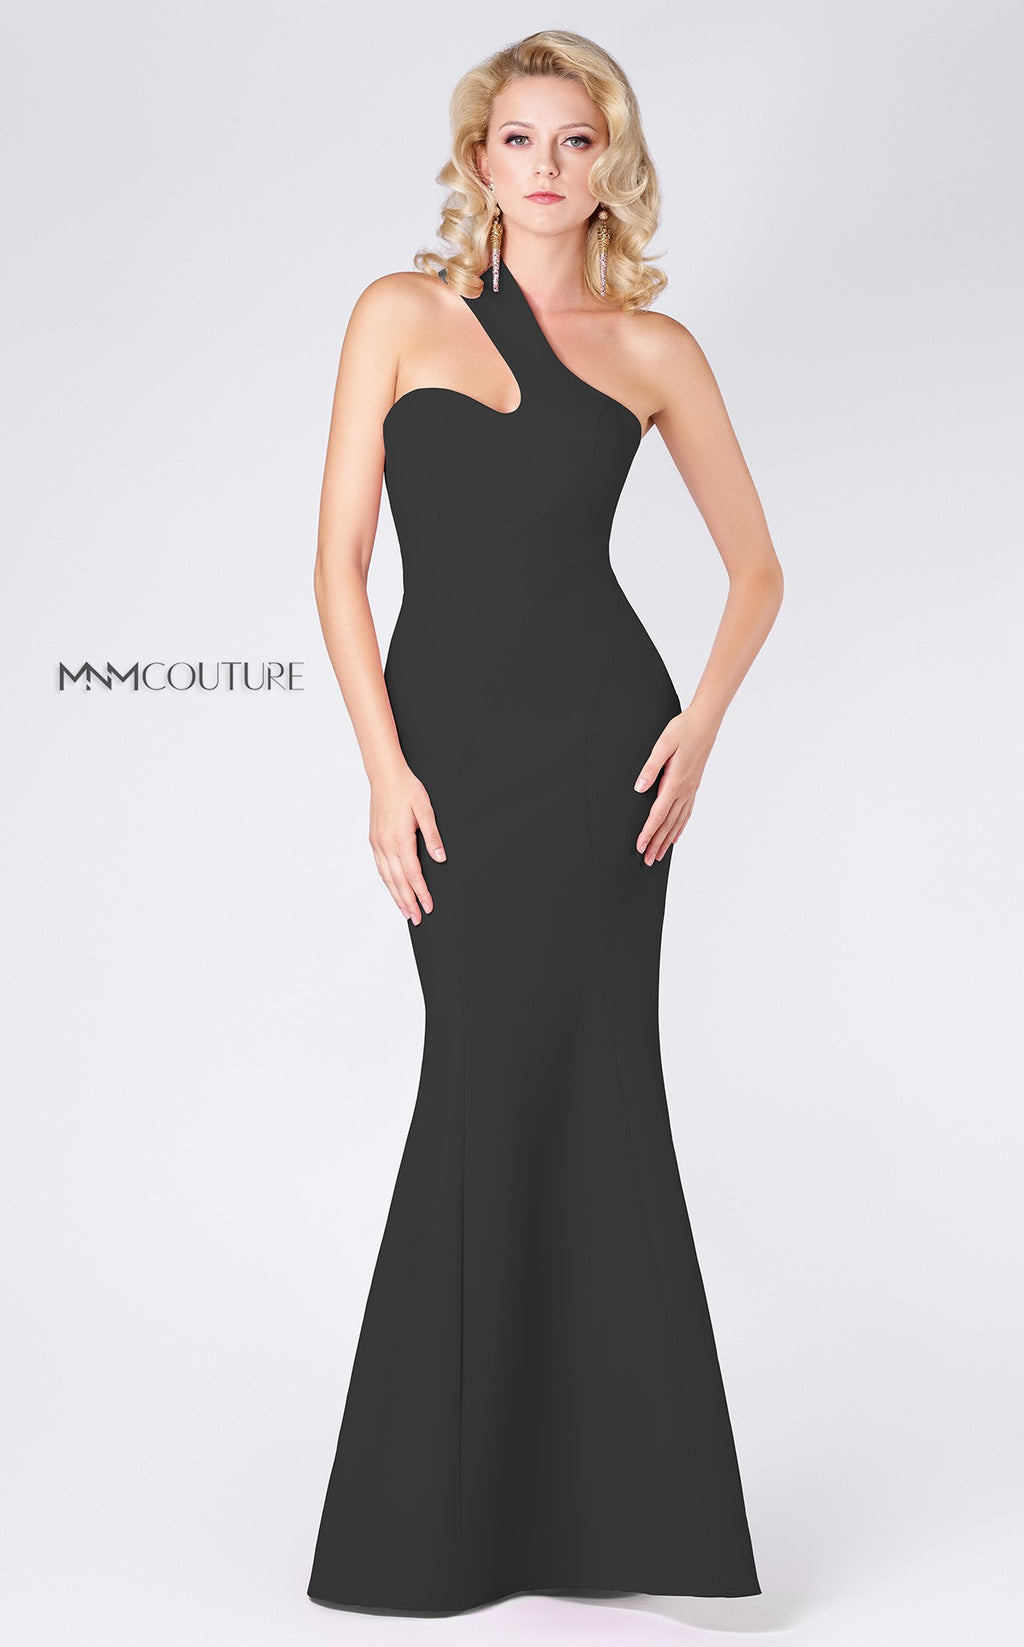 MNM Couture M0003 Asymmetric One Shoulder Evening Dress